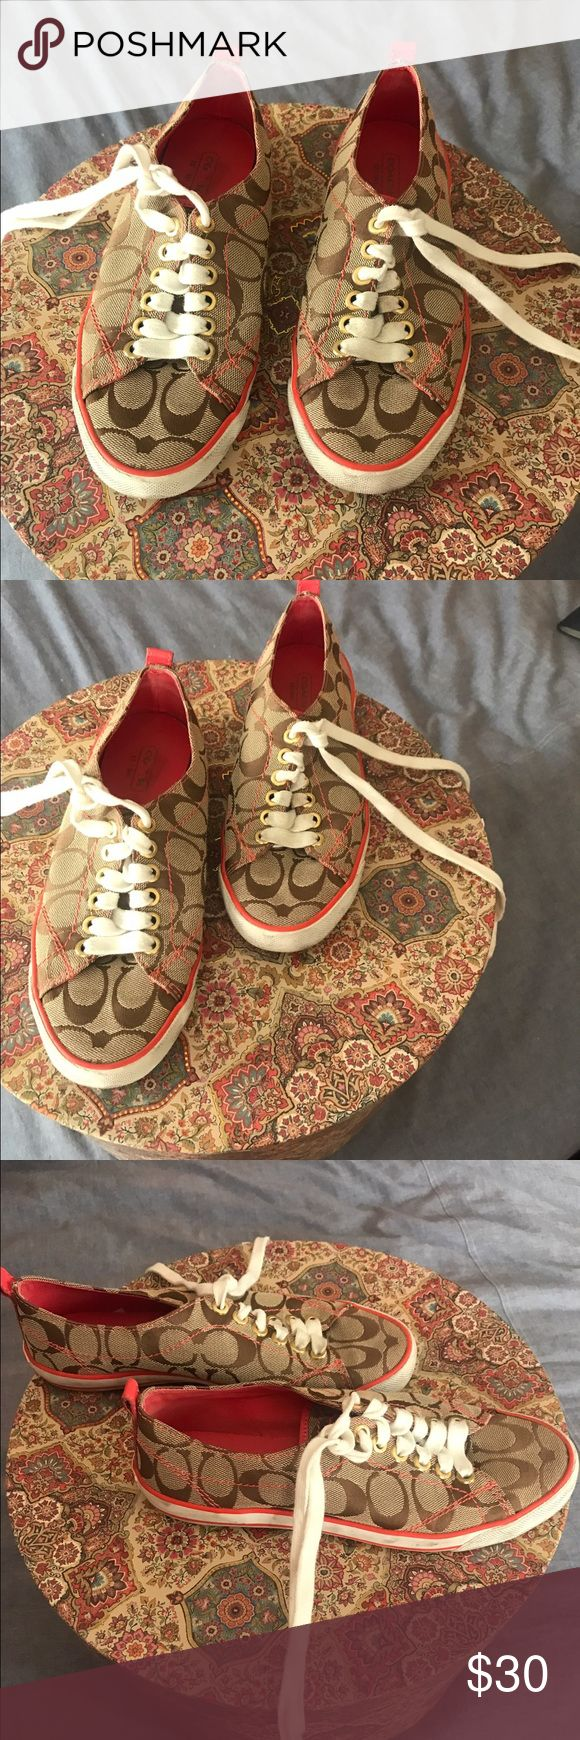 Coach Shoes , tennis shoes Coach tennis shoes, only worn twice and is in very good condition. Coach Shoes Sneakers